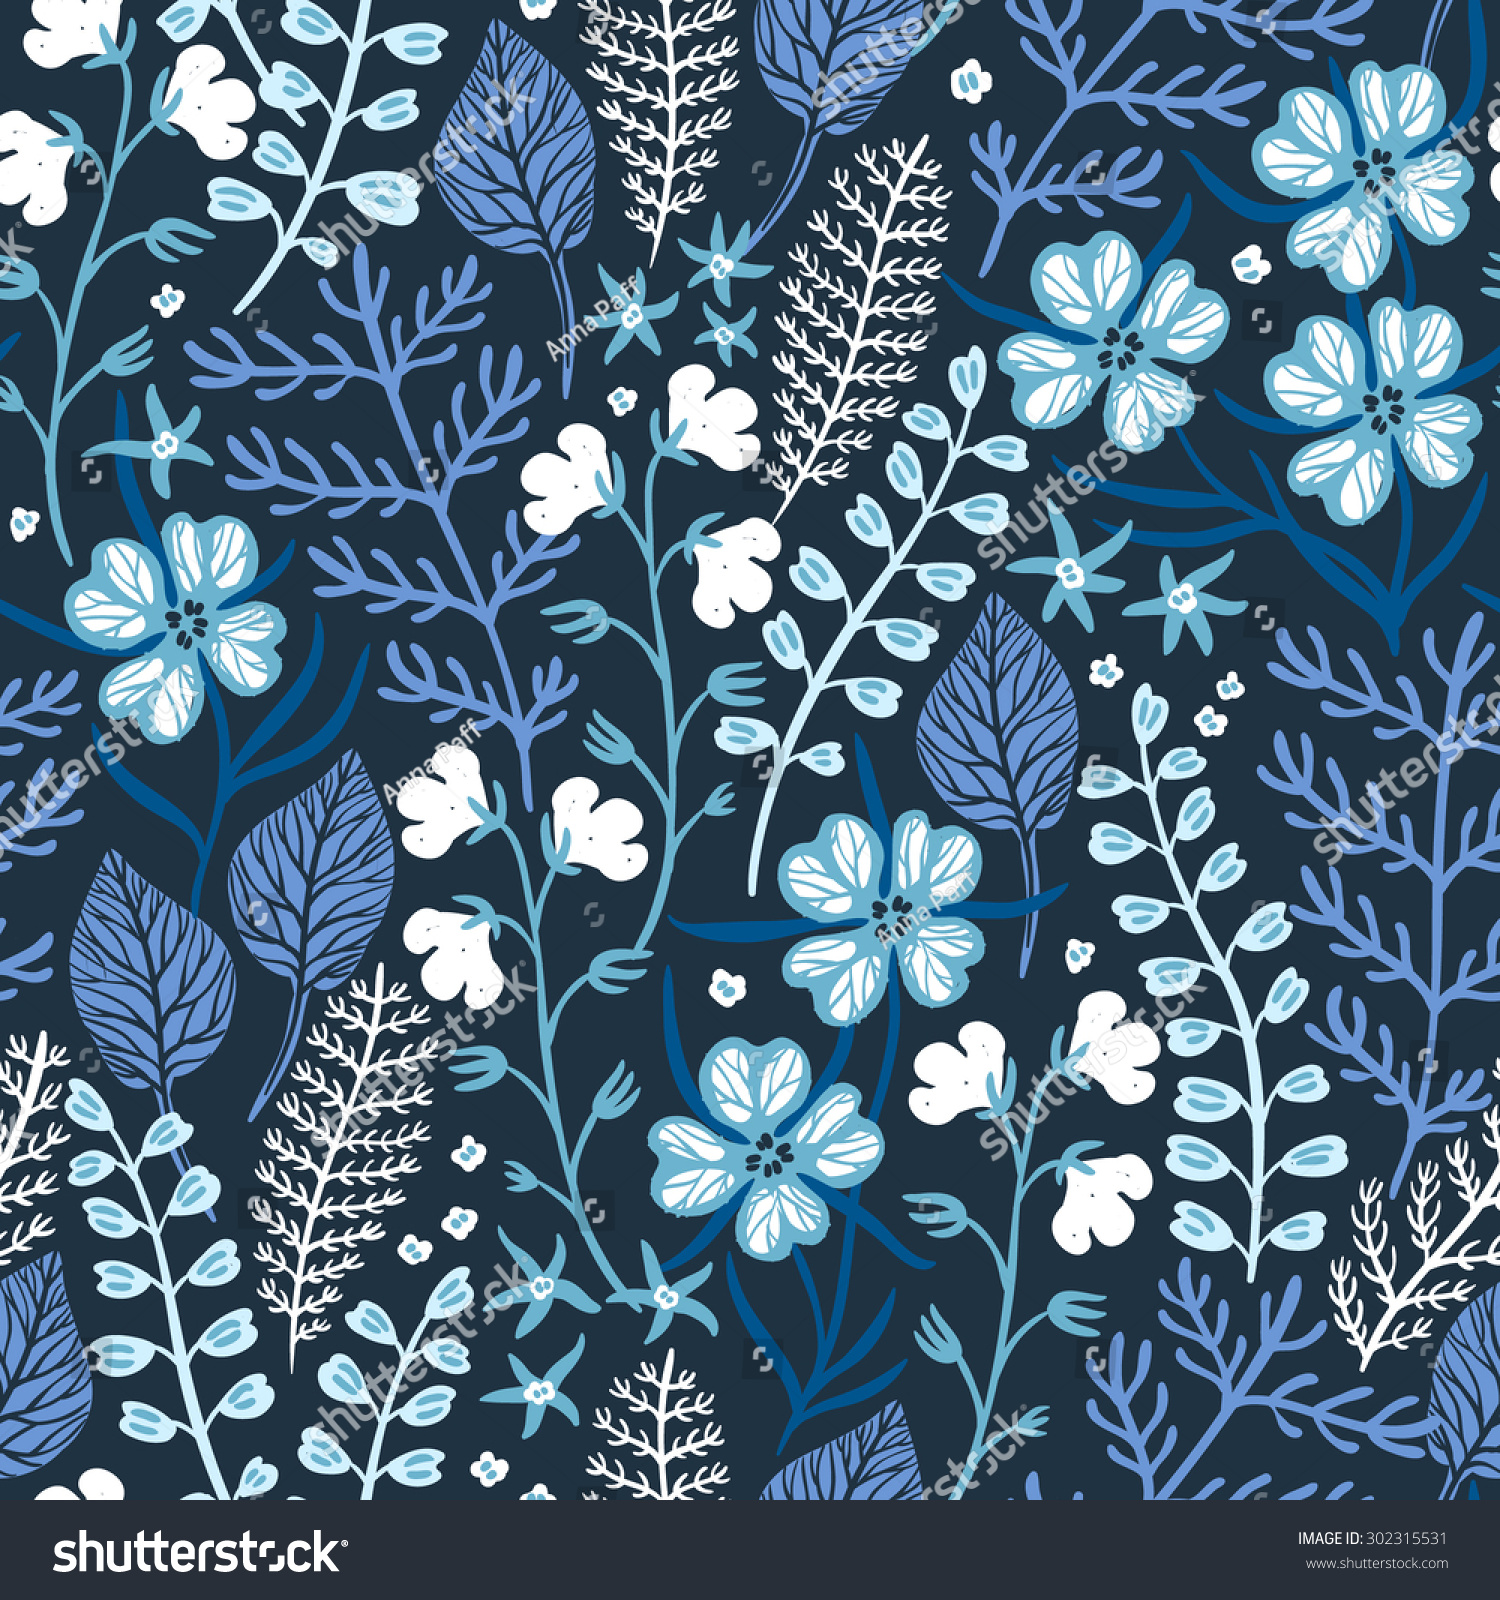 Vector Floral Seamless Pattern With Blue Plants And Flowers Ez Canvas